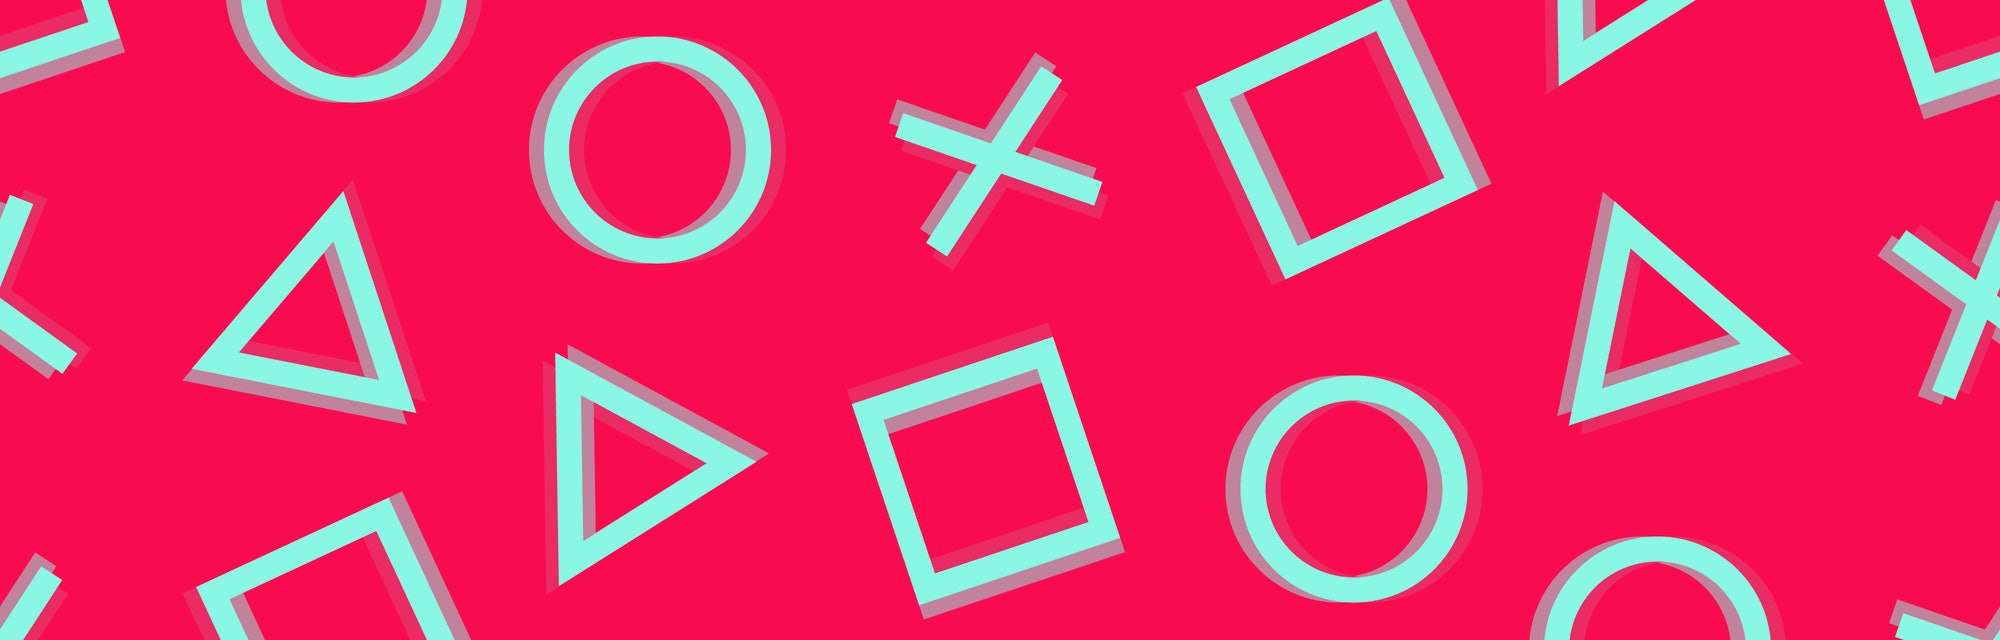 pattern cross triangle square circle design game play station 4 symbols icons playstation 5